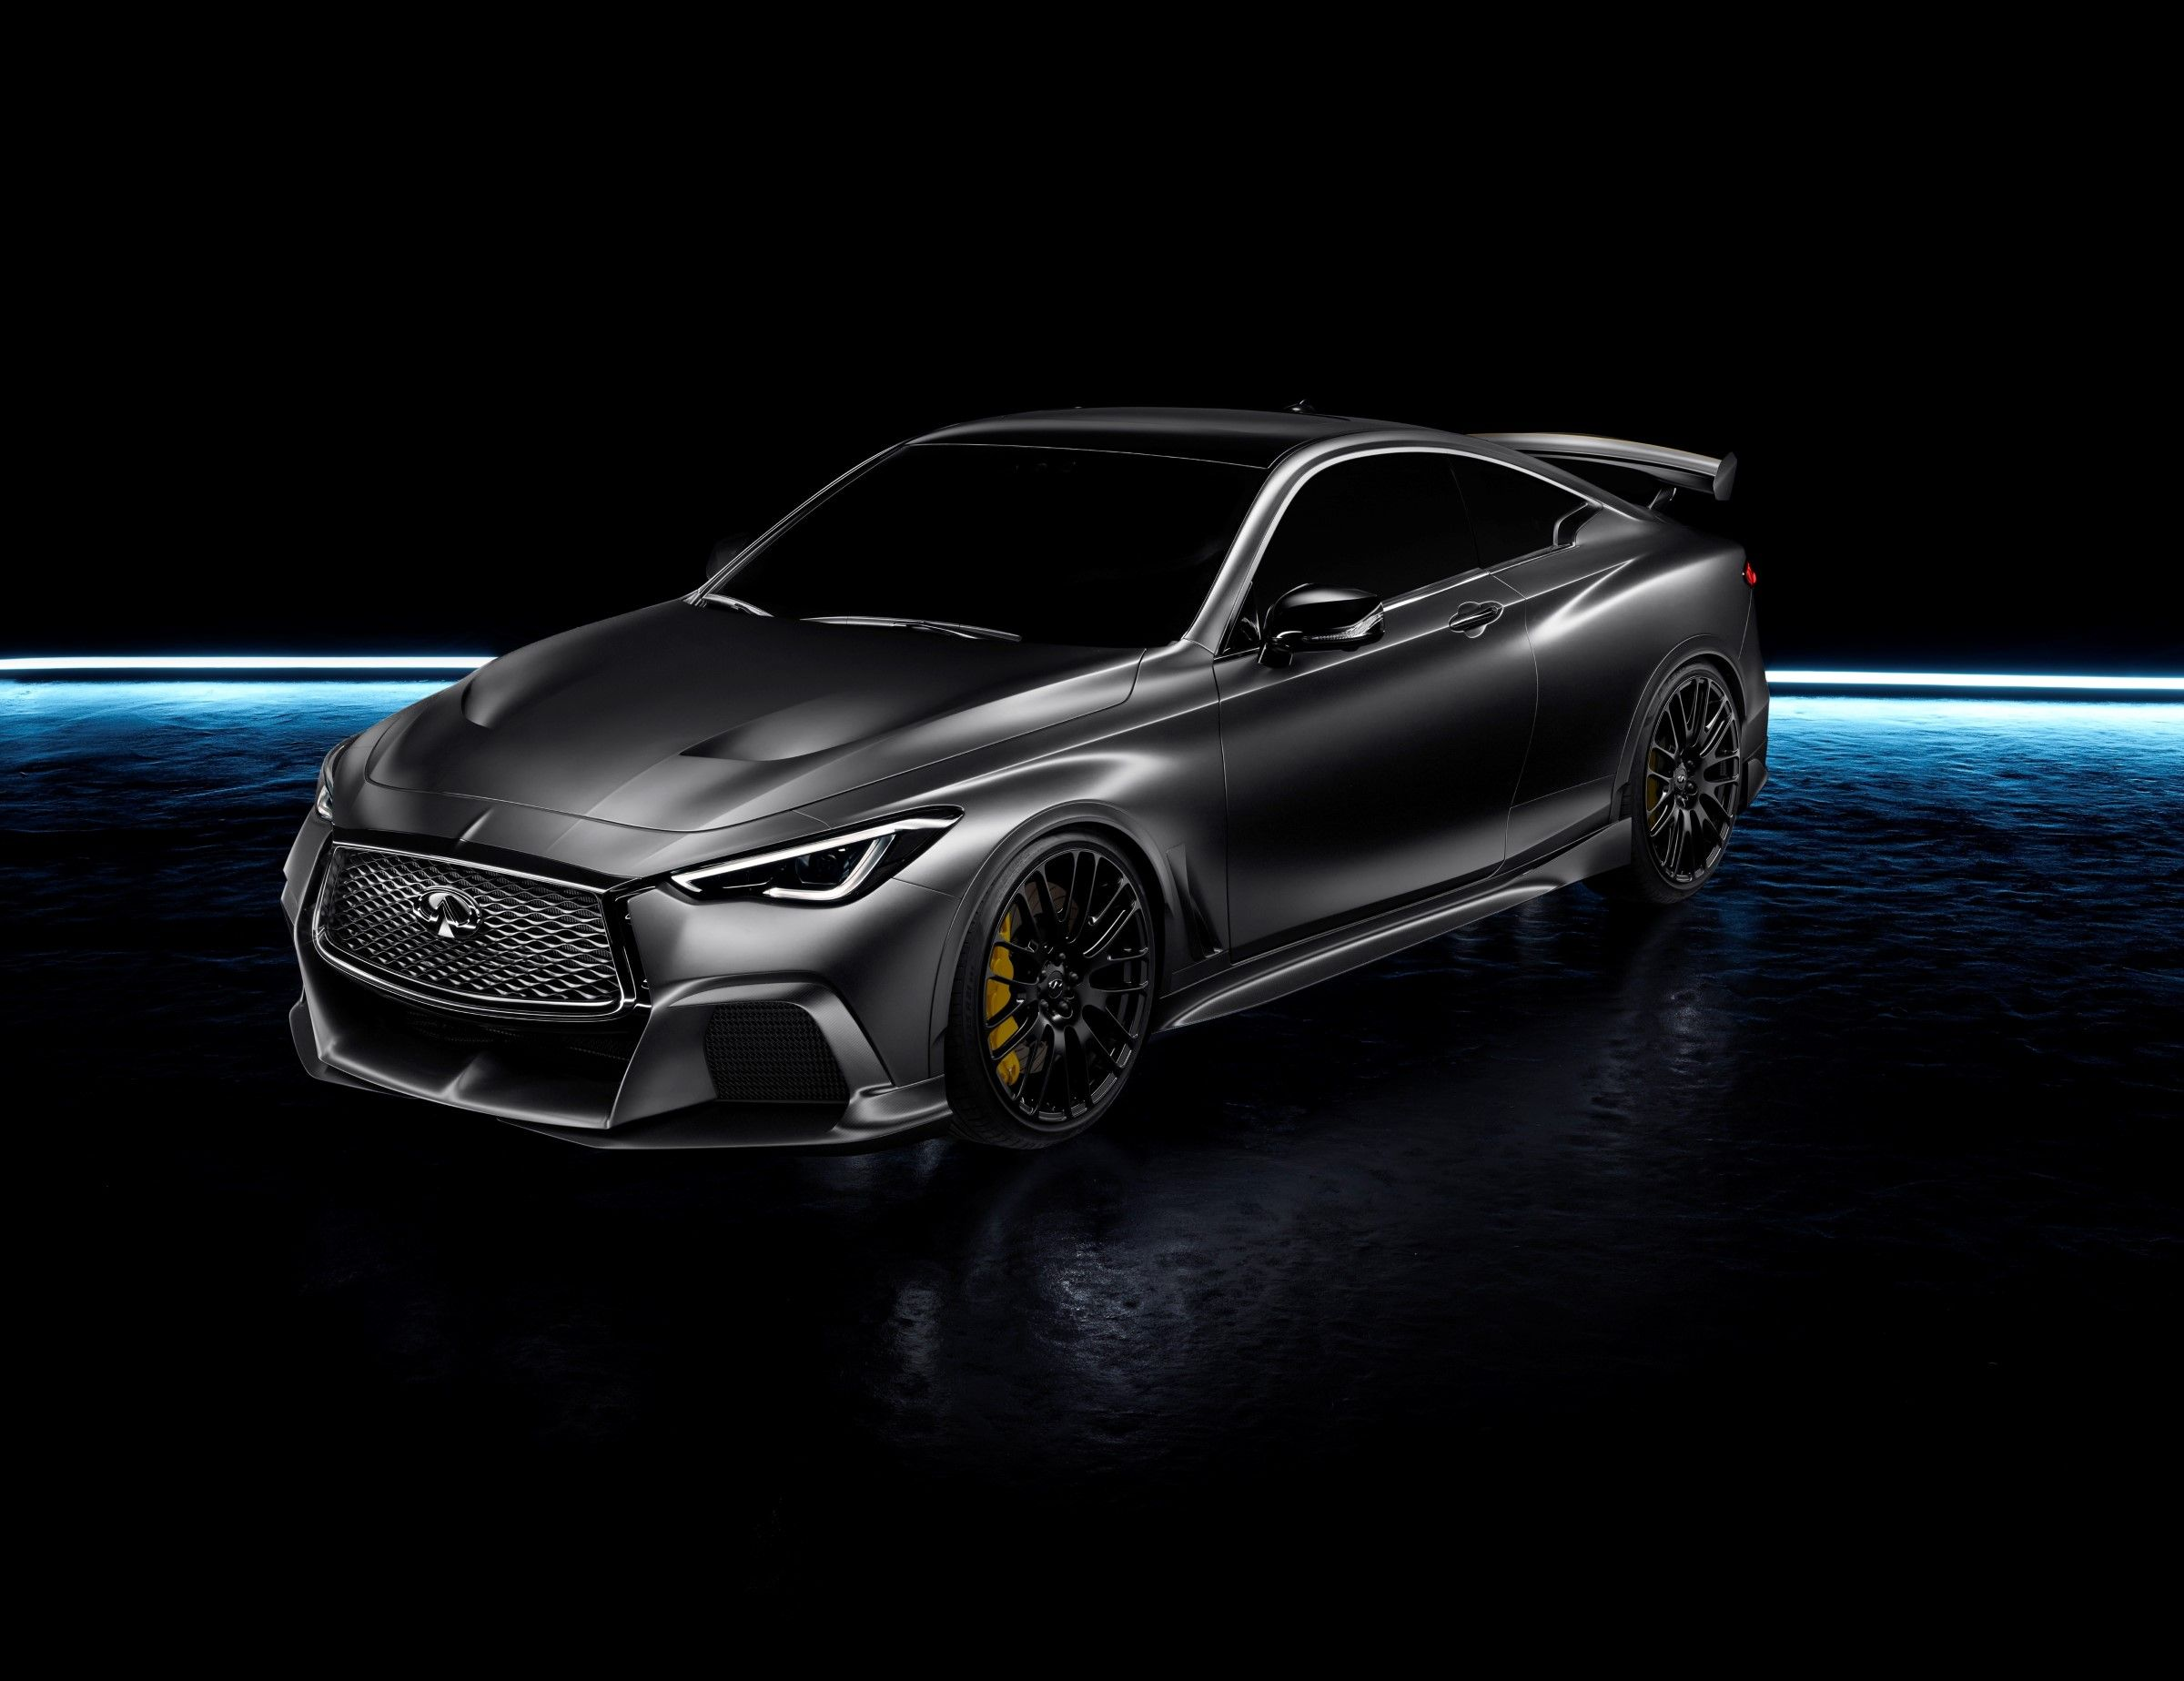 Infiniti black s concept as introduced at the 2017 geneva show via an adapted dual hybrid powertrain using ers energy recovery system technology from